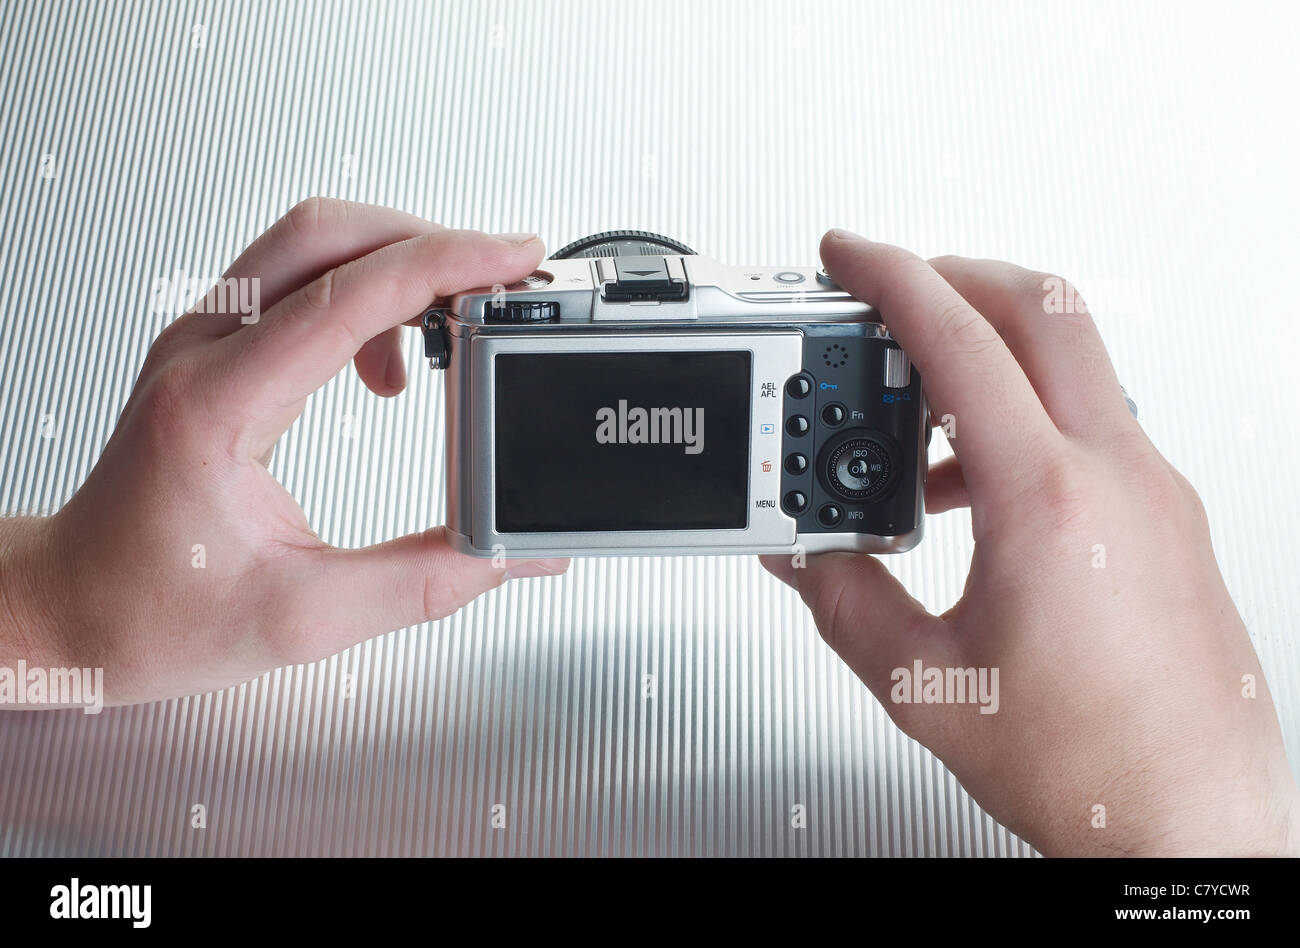 Hands holding a digital camera - Stock Image